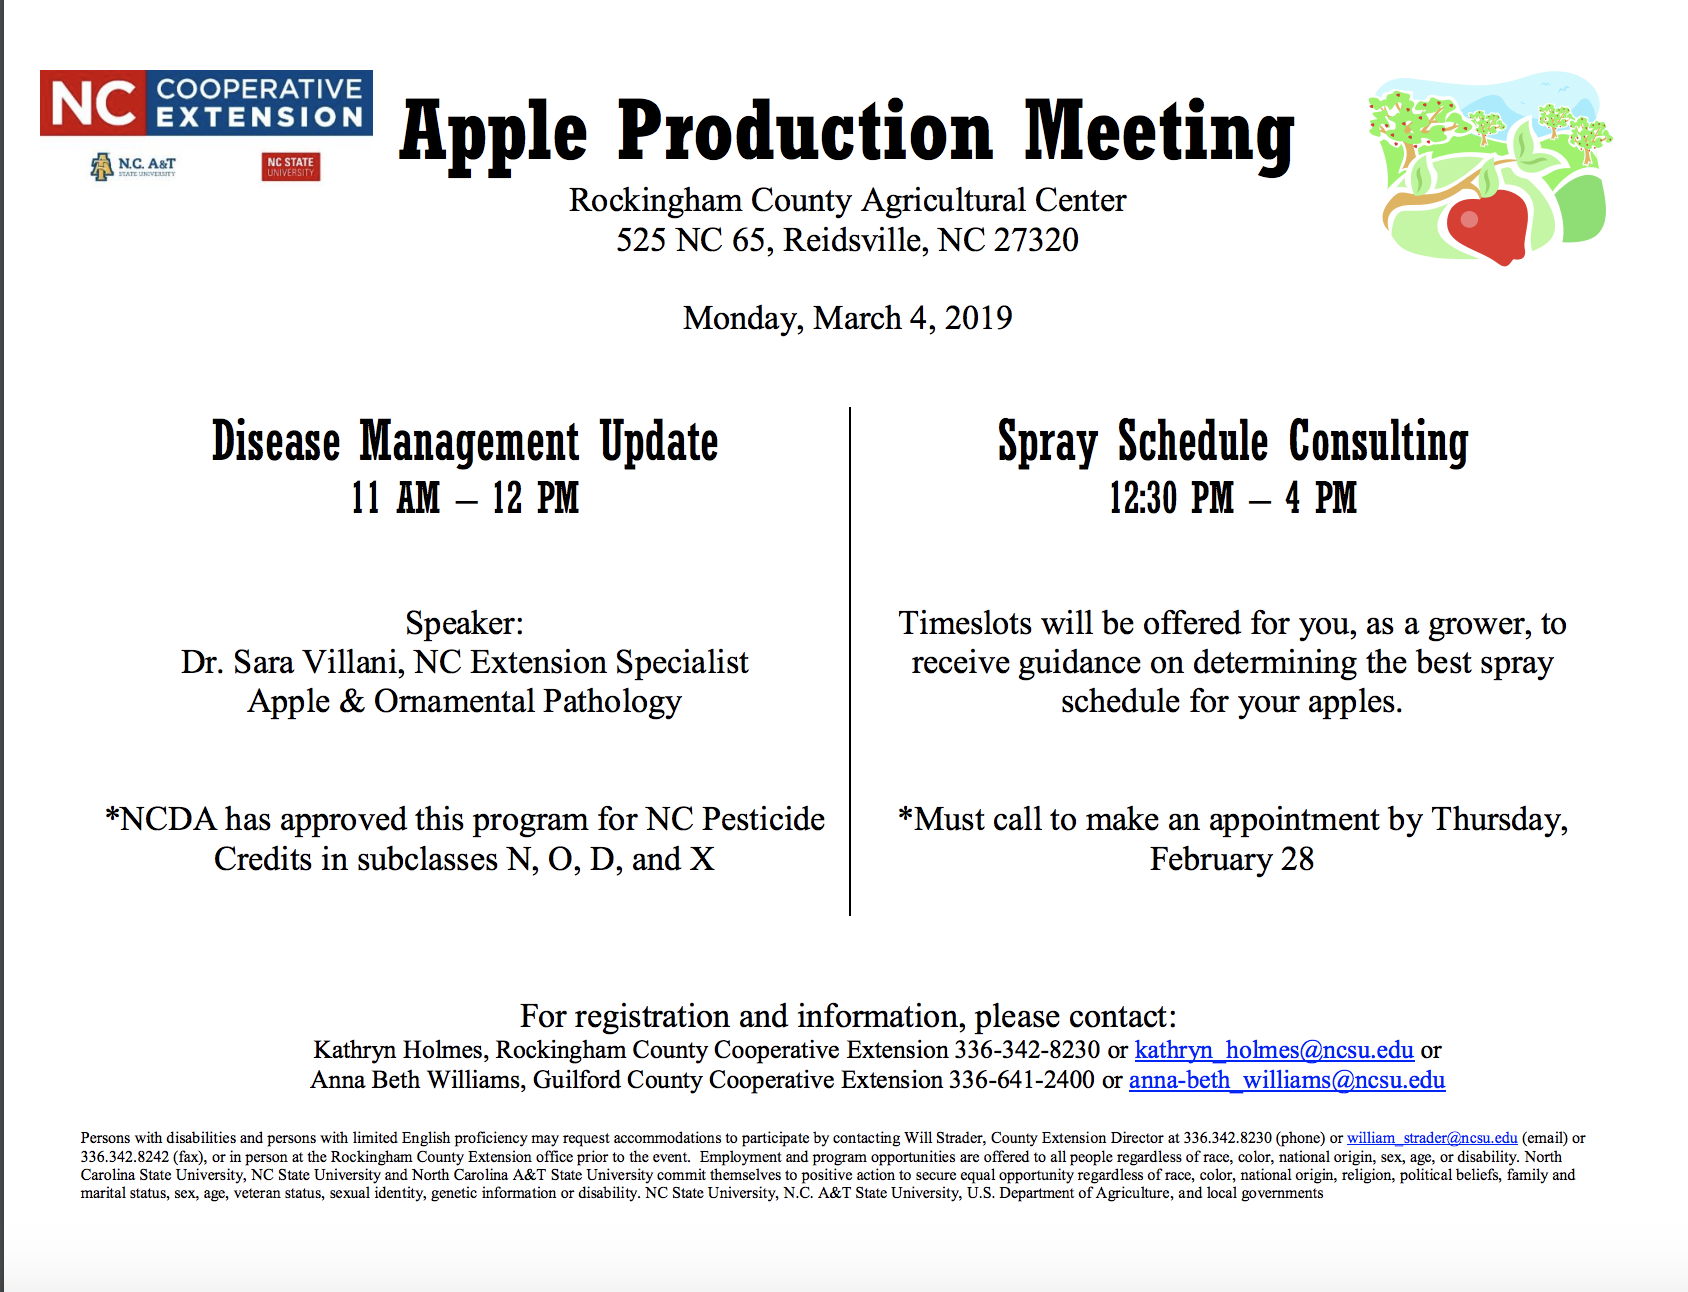 Apple production meeting flyer image